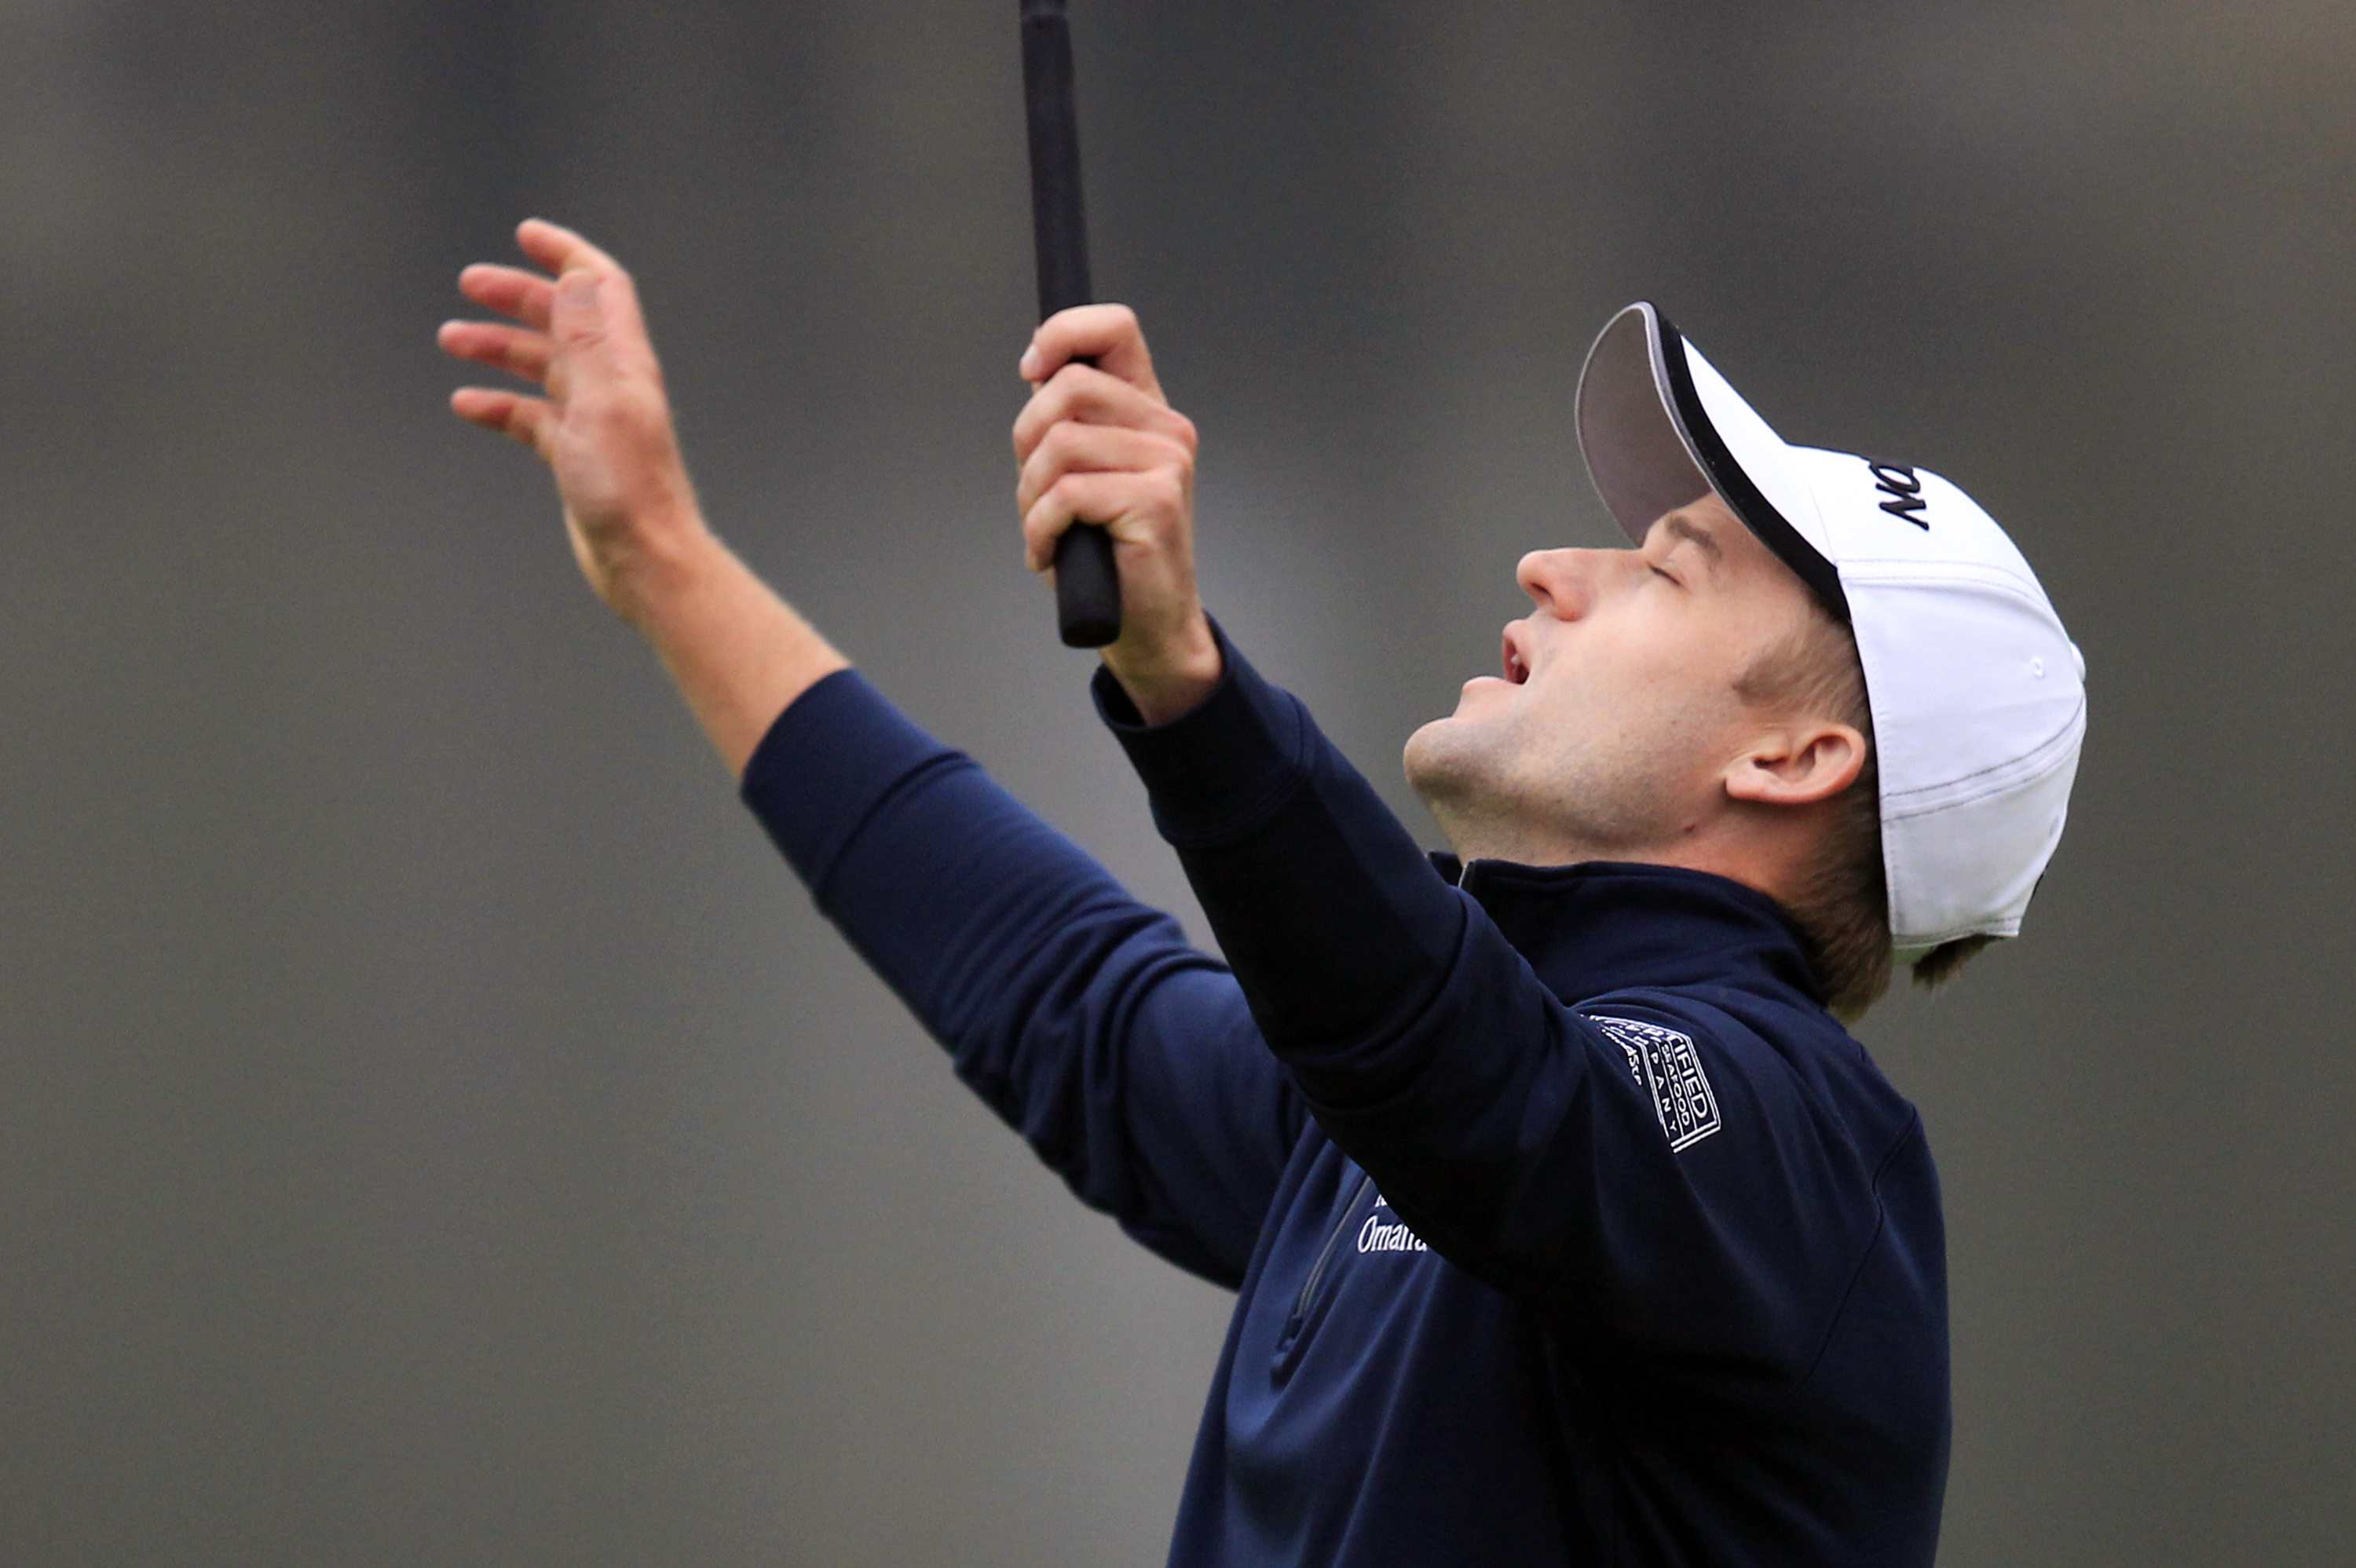 Russell Knox of Scotland celebrates on the 18th hole after the final round of the HSBC Champions golf tournament at the Sheshan International Golf Club in Shanghai, China Sunday, Nov. 8, 2015. (AP